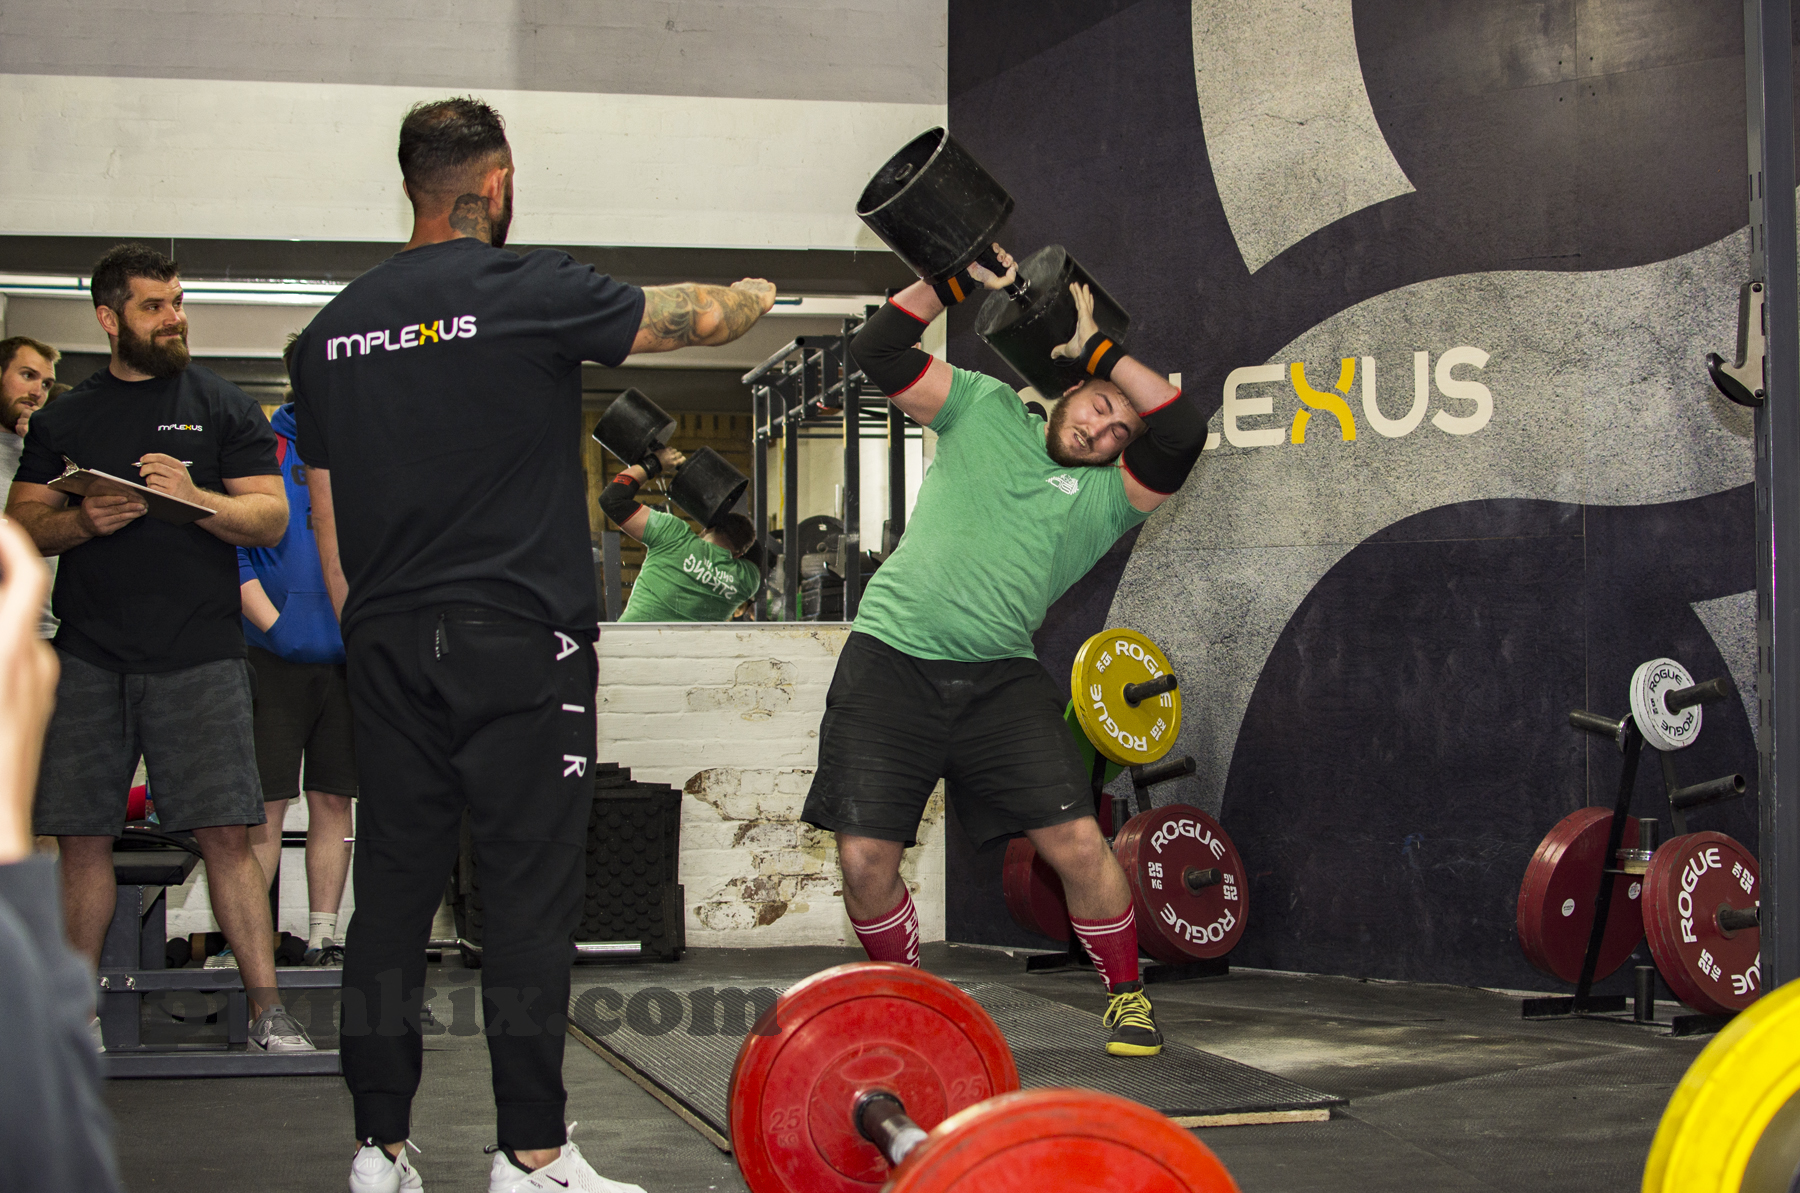 Implexus Strongman Competition UK 12.05.2018